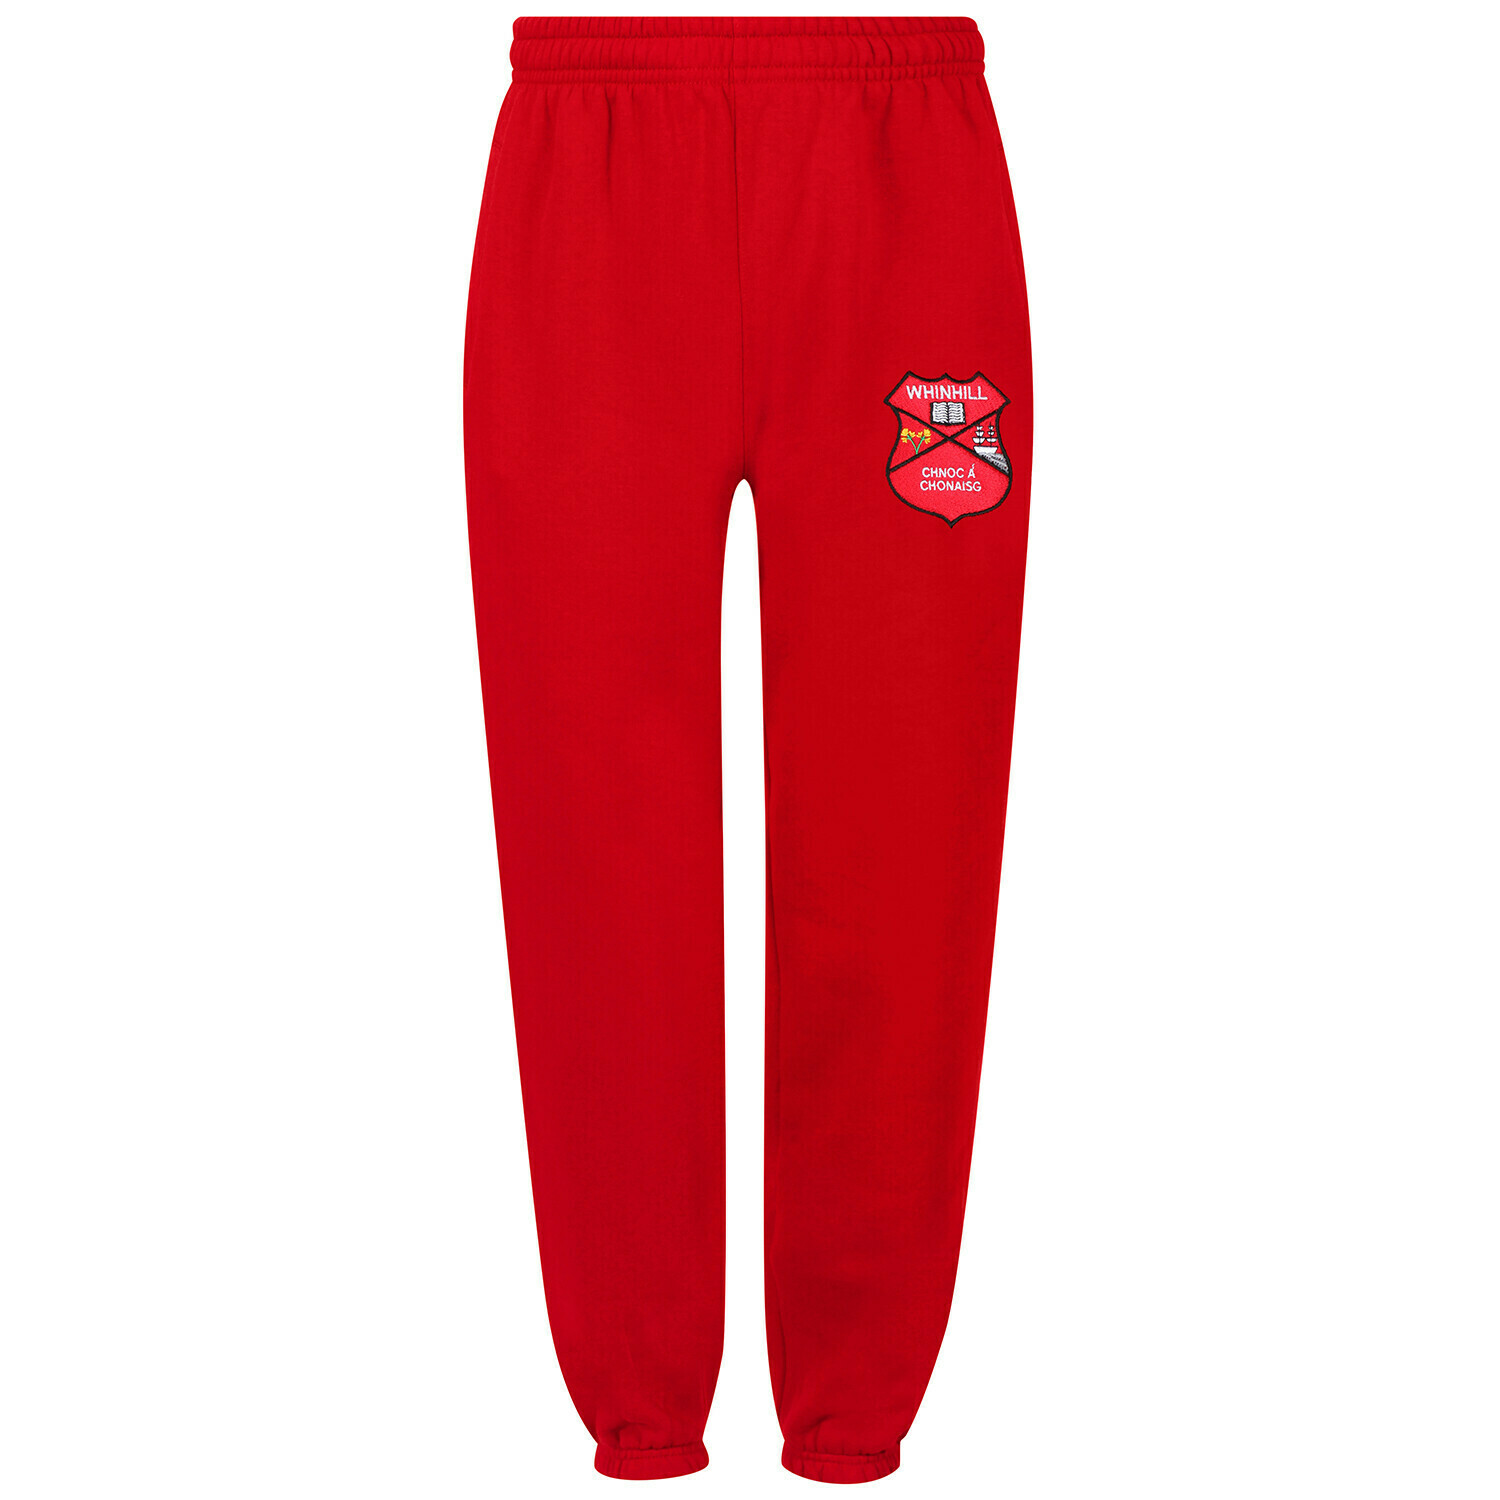 Whinhill Nursery Jog Pant (For PE & Outdoor Activity)